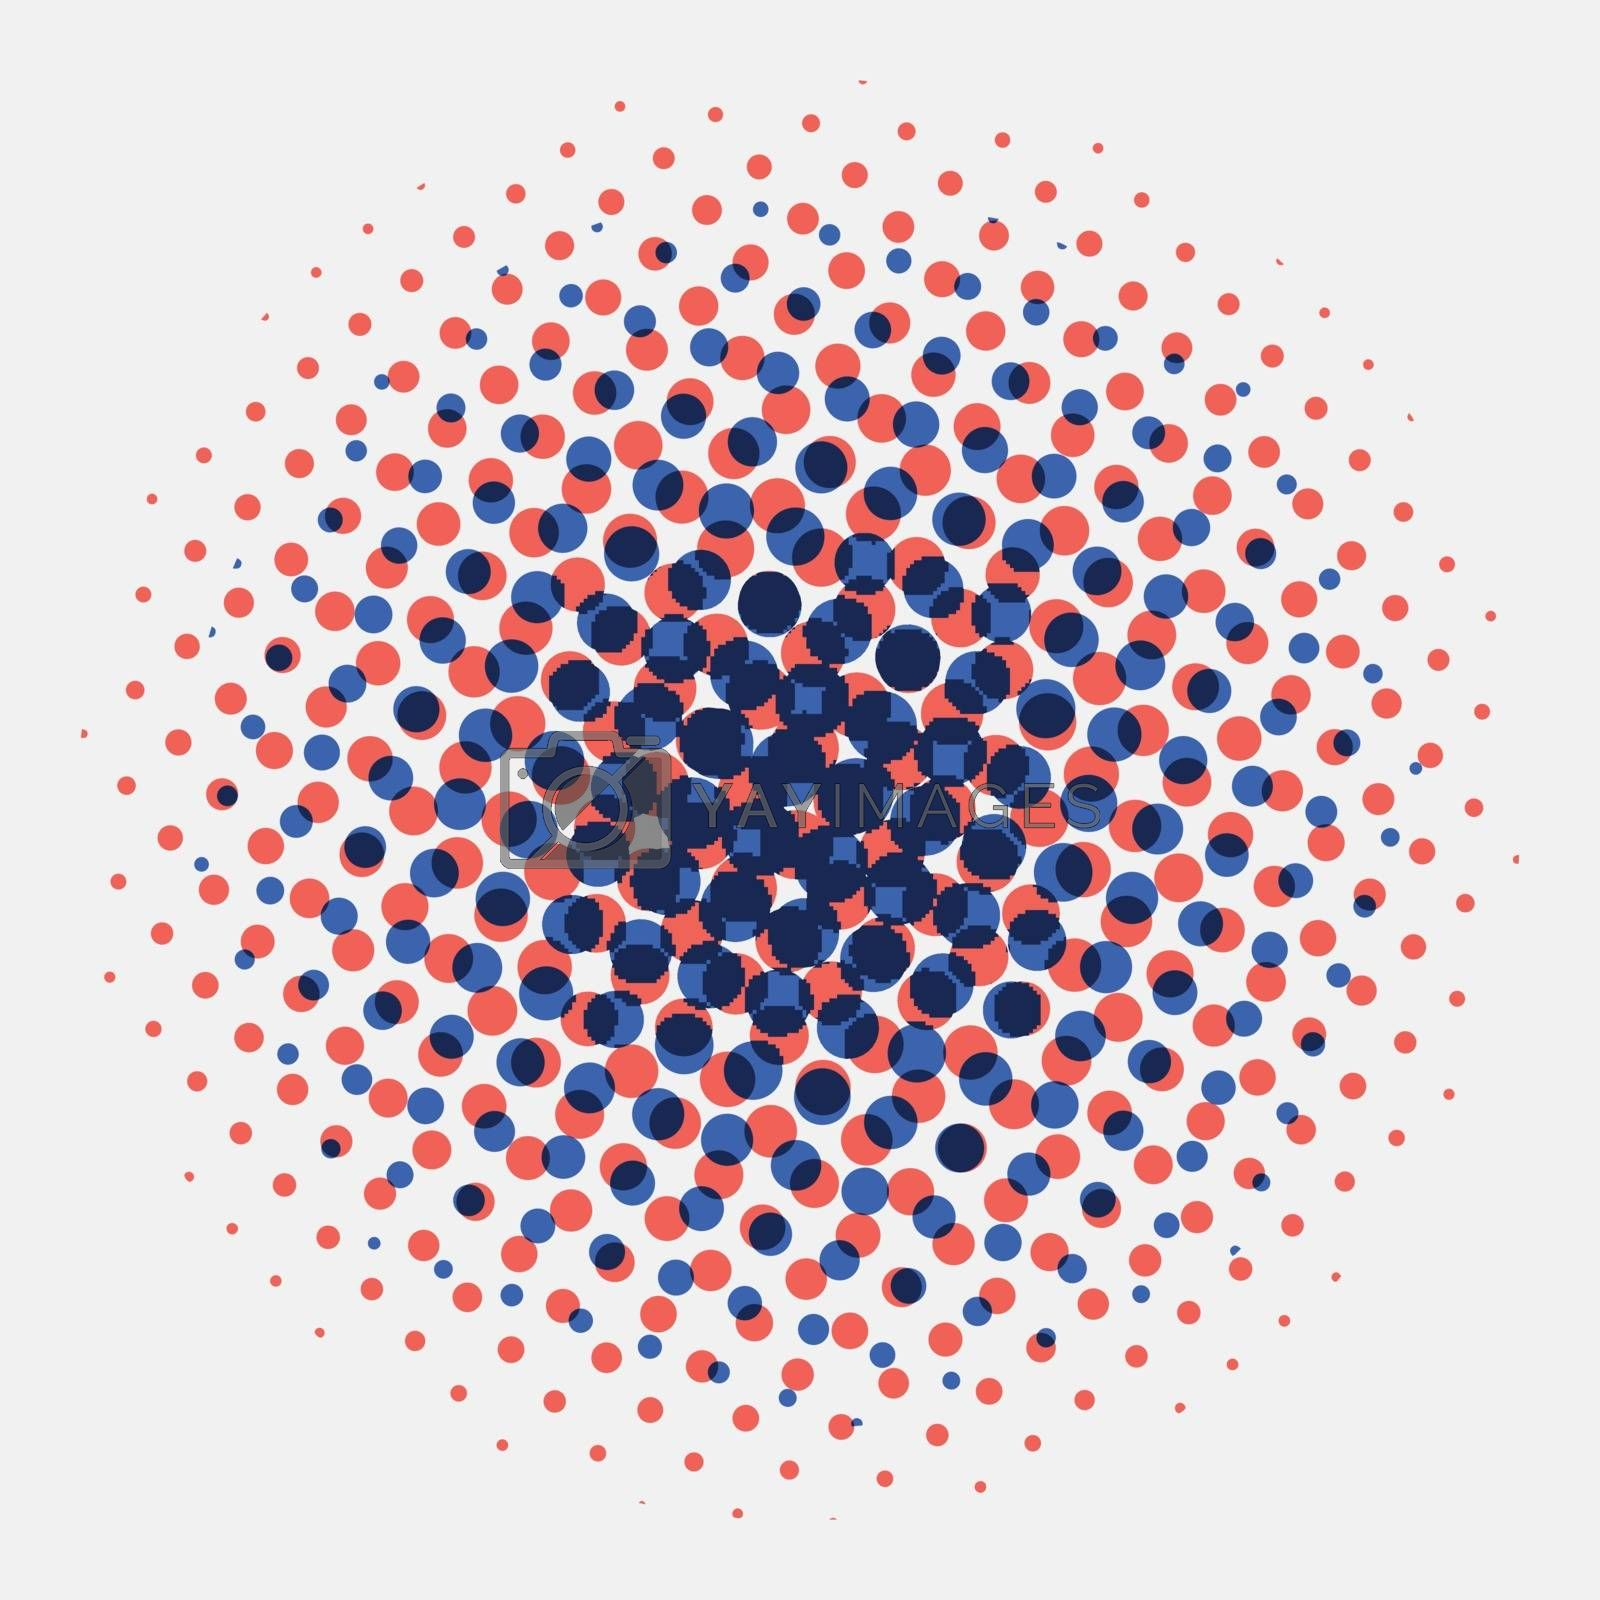 Royalty free image of Abstract spotted halftone circles radial blue and orange color o by phochi